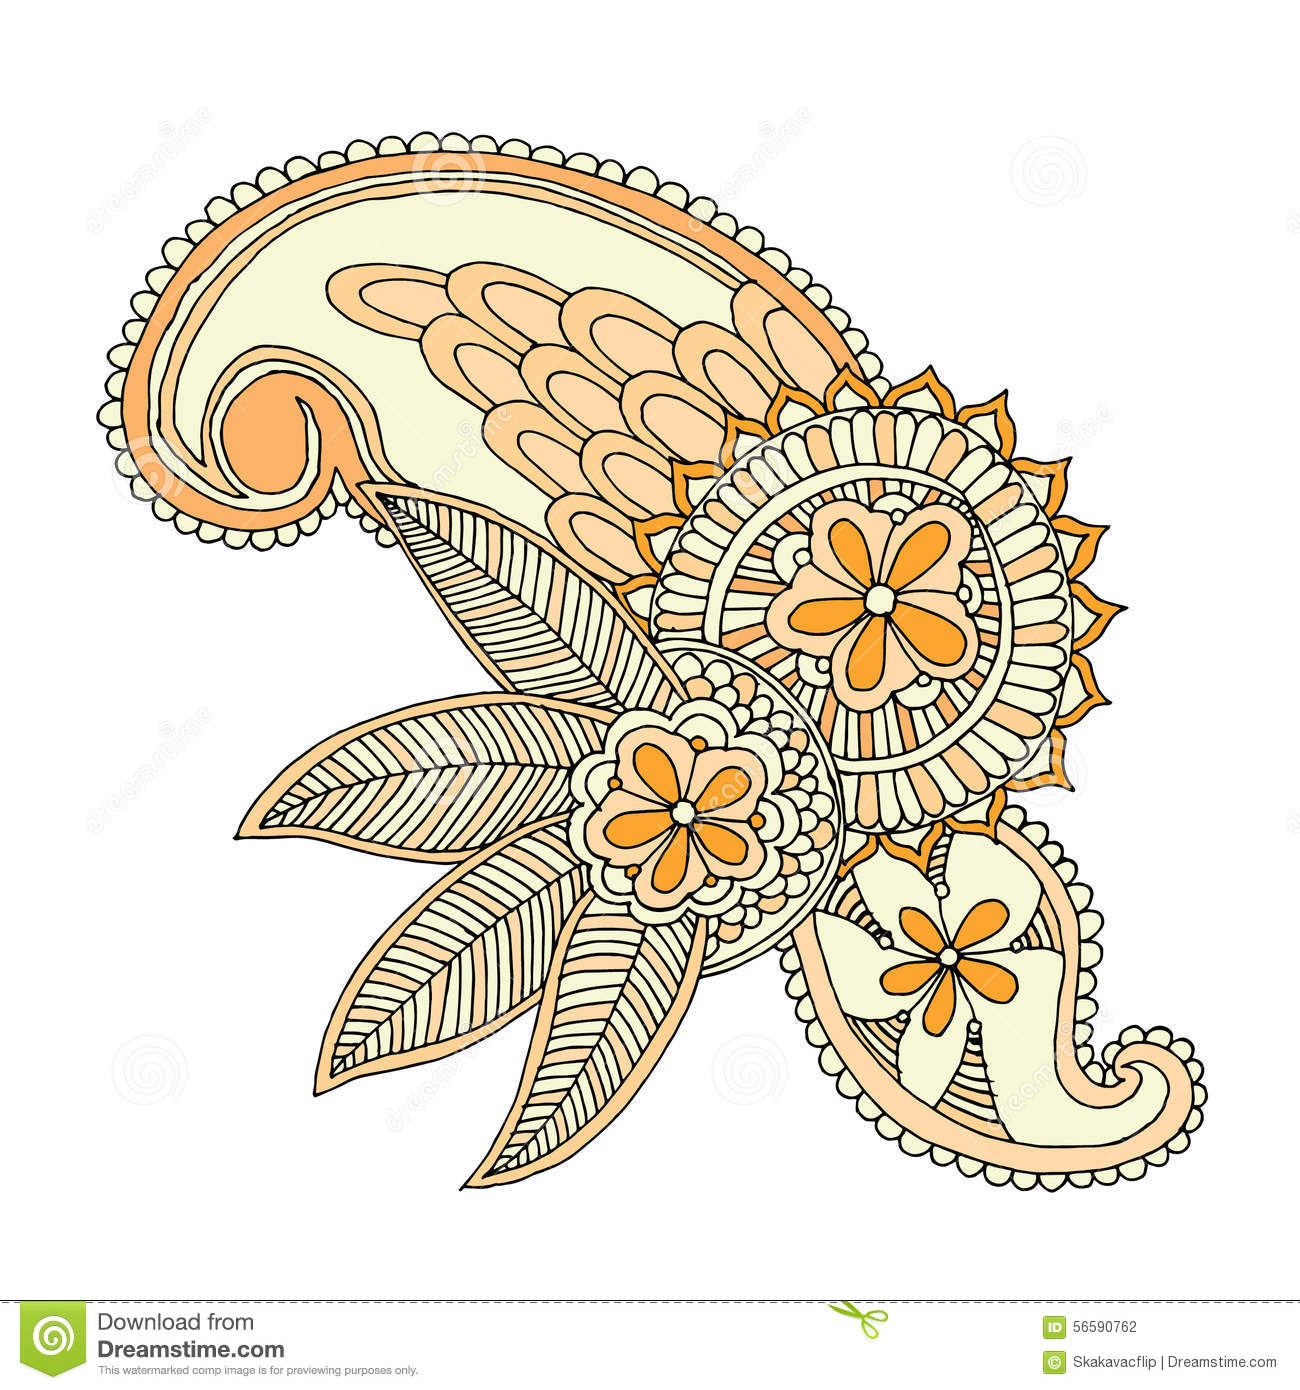 Line Drawing Embroidery : Neckline embroidery design stock vector illustration of